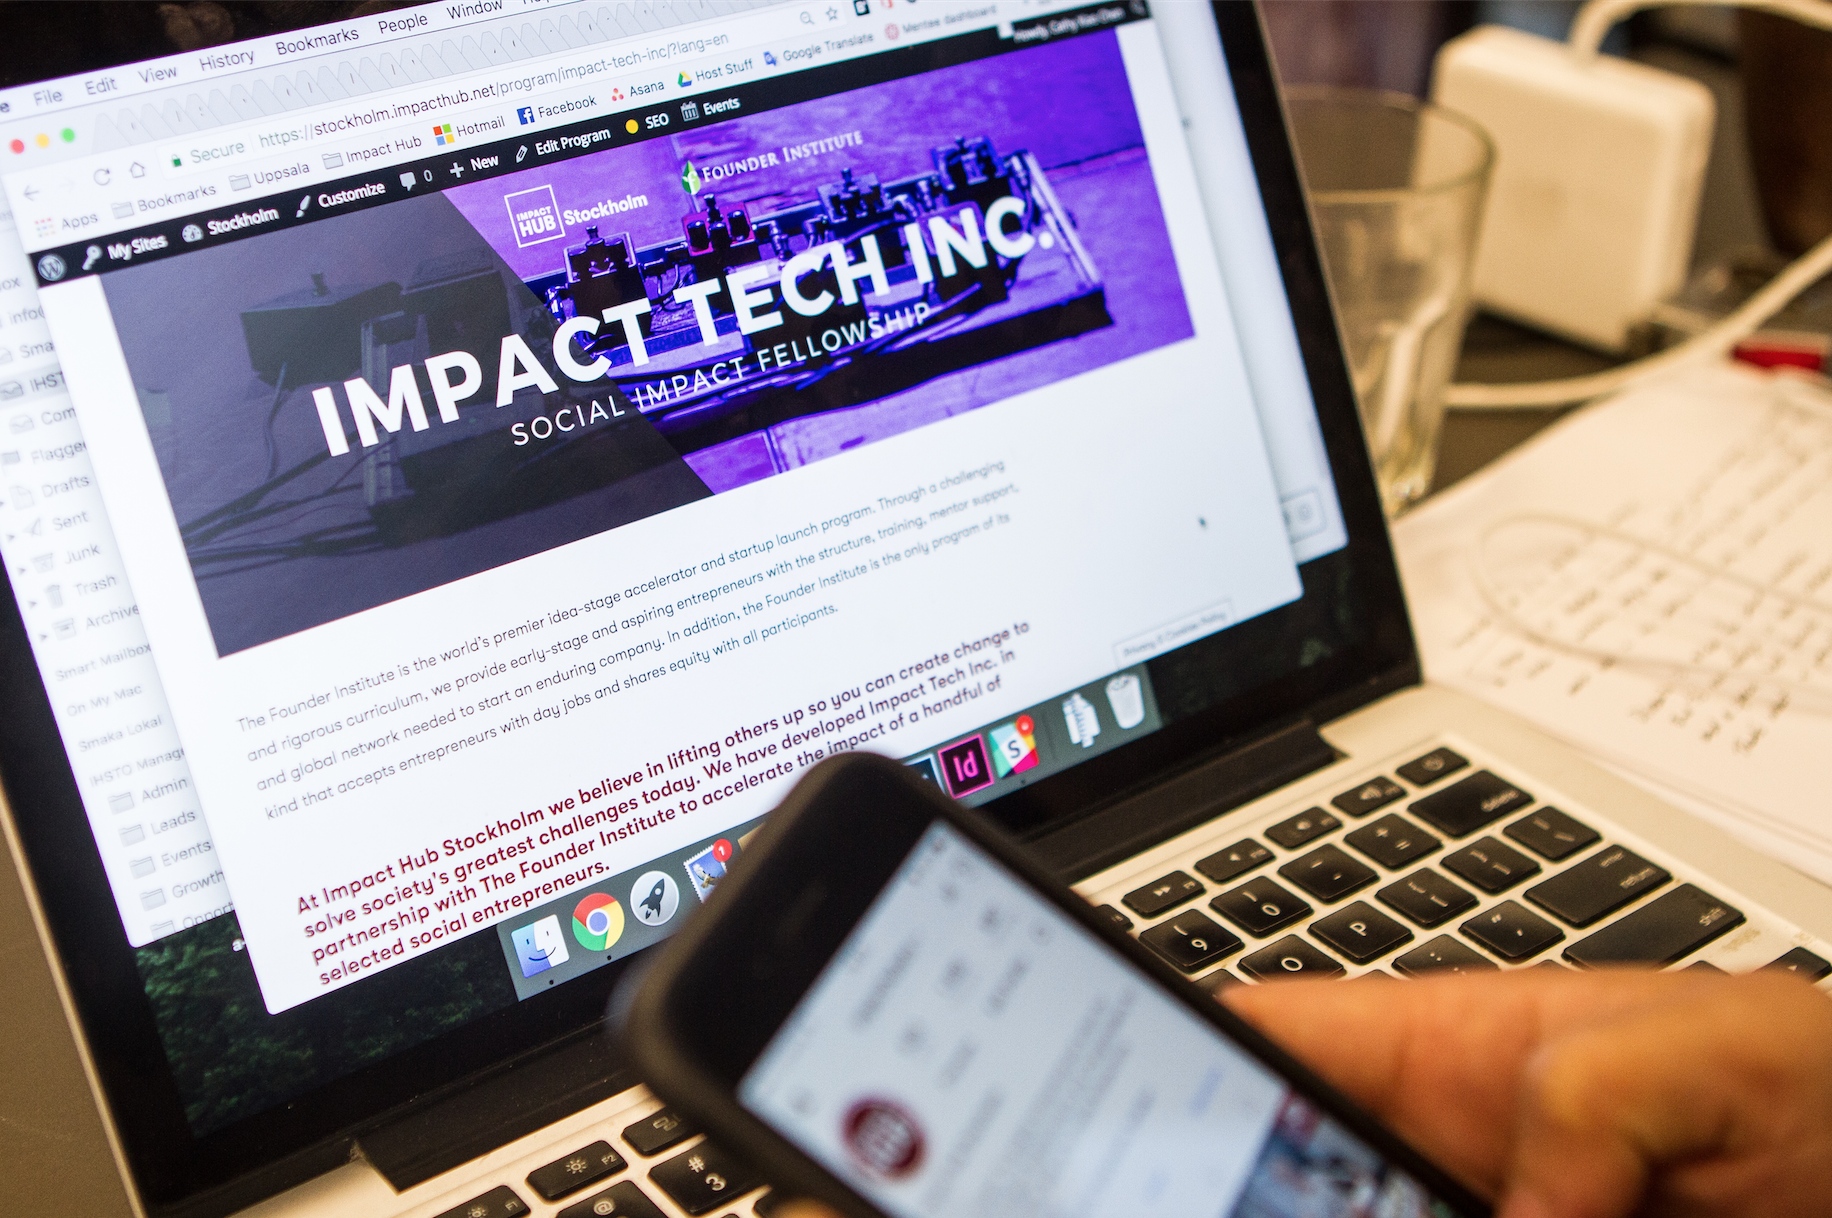 Working hard on putting together a program to accelerate one chosen startup that uses tech to create a positive impact on the world. In partnership between Impact Hub Stockholm and the Founder Institute.